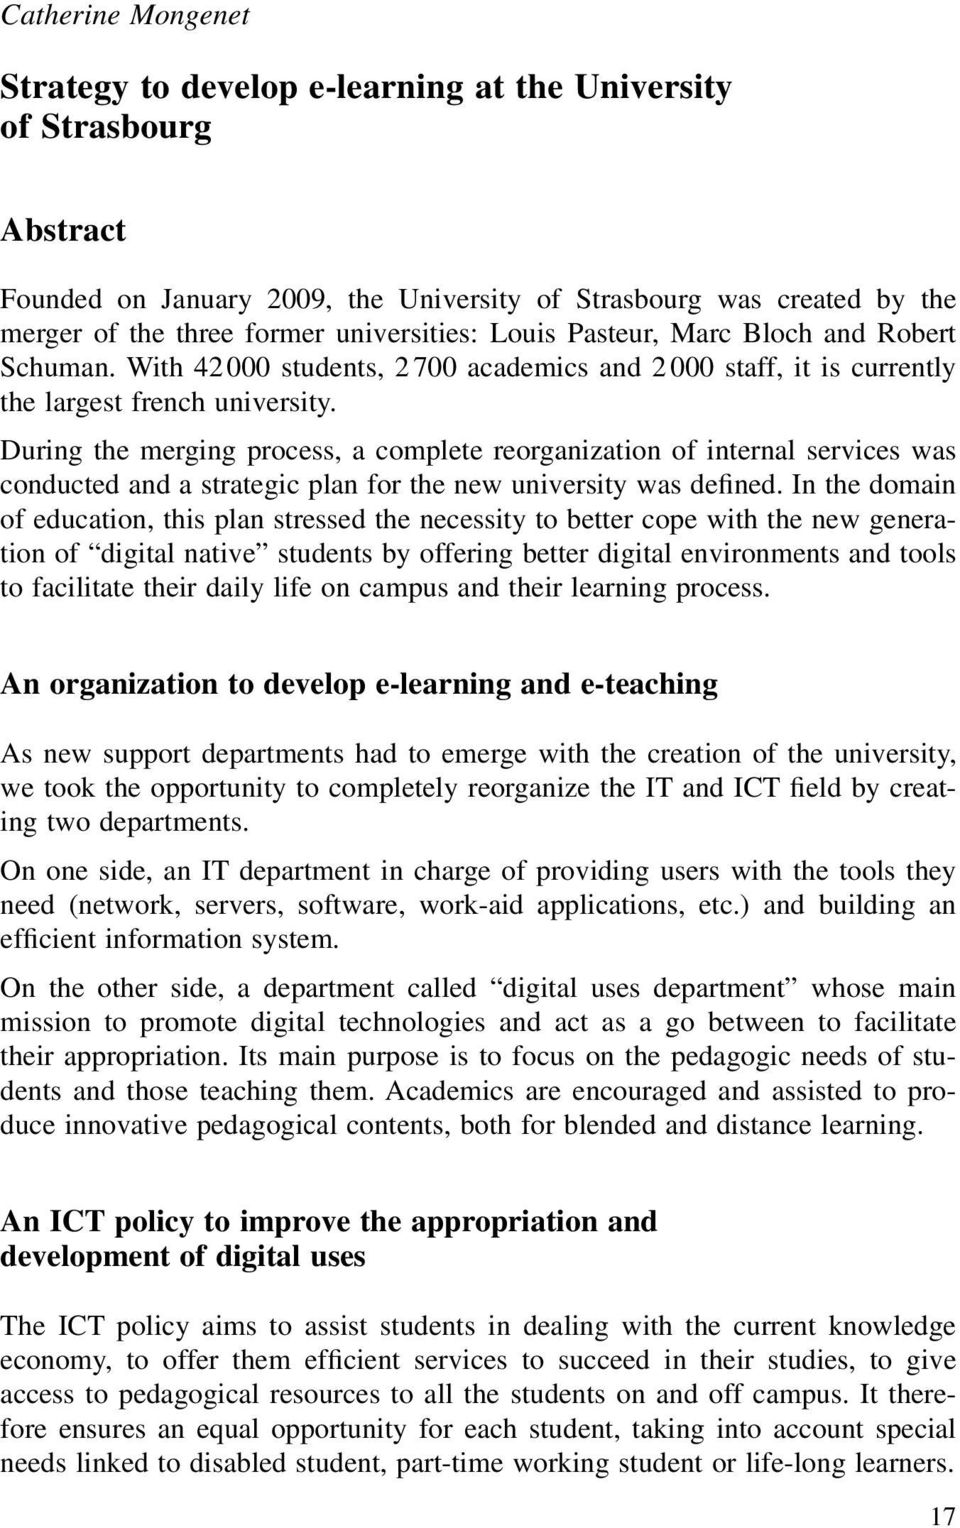 During the merging process, a complete reorganization of internal services was conducted and a strategic plan for the new university was defined.